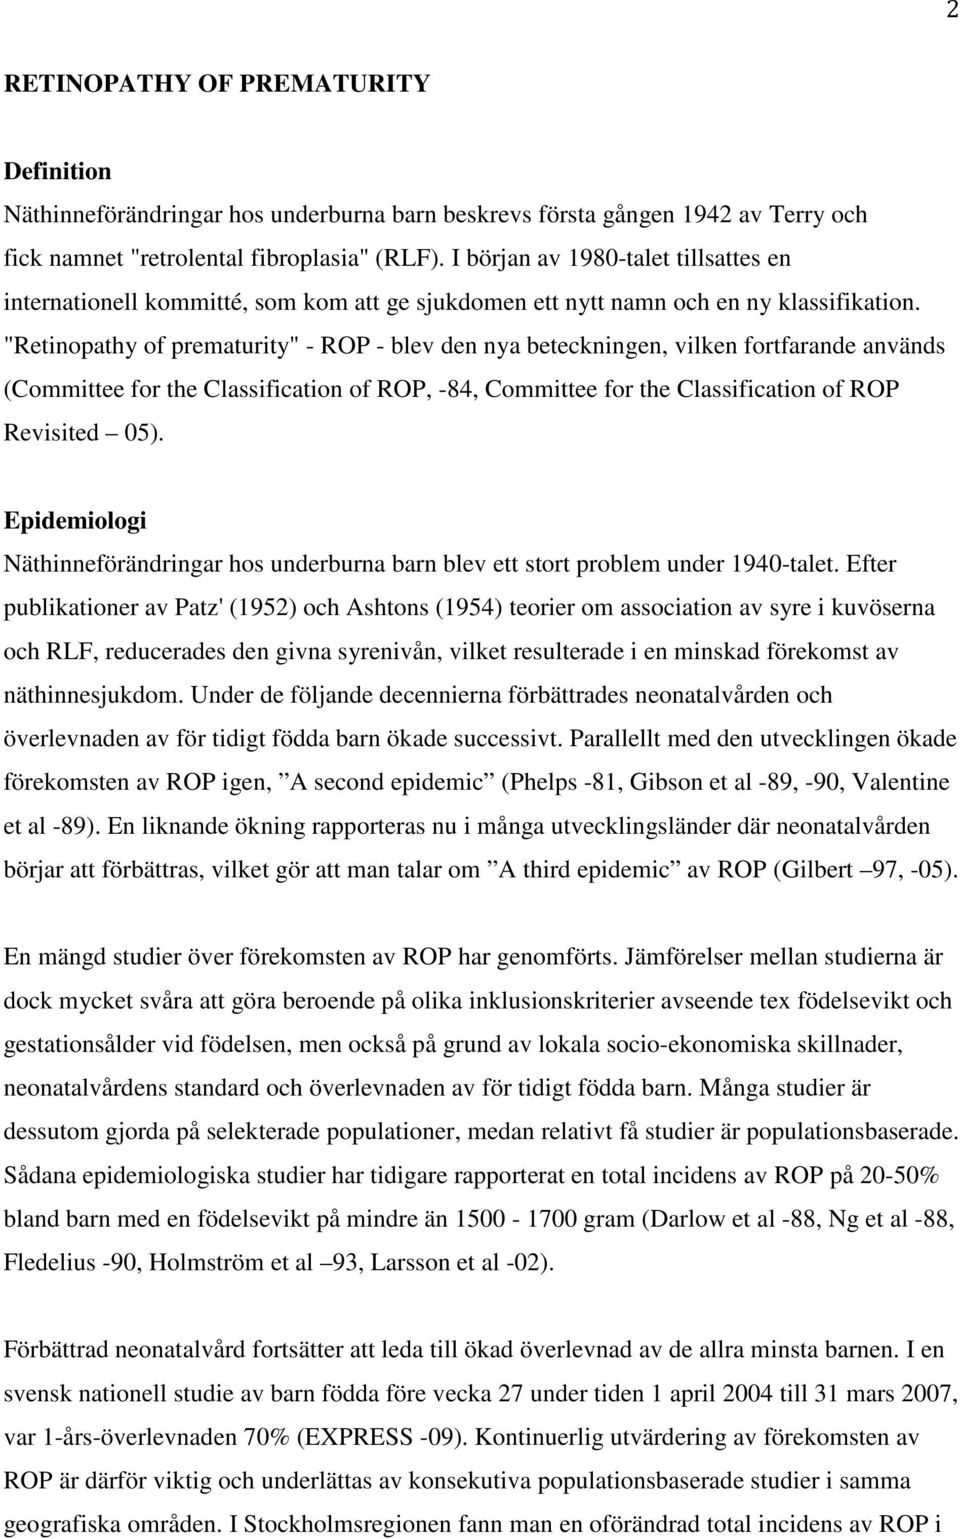 """Retinopathy of prematurity"" - ROP - blev den nya beteckningen, vilken fortfarande används (Committee for the Classification of ROP, -84, Committee for the Classification of ROP Revisited 05)."